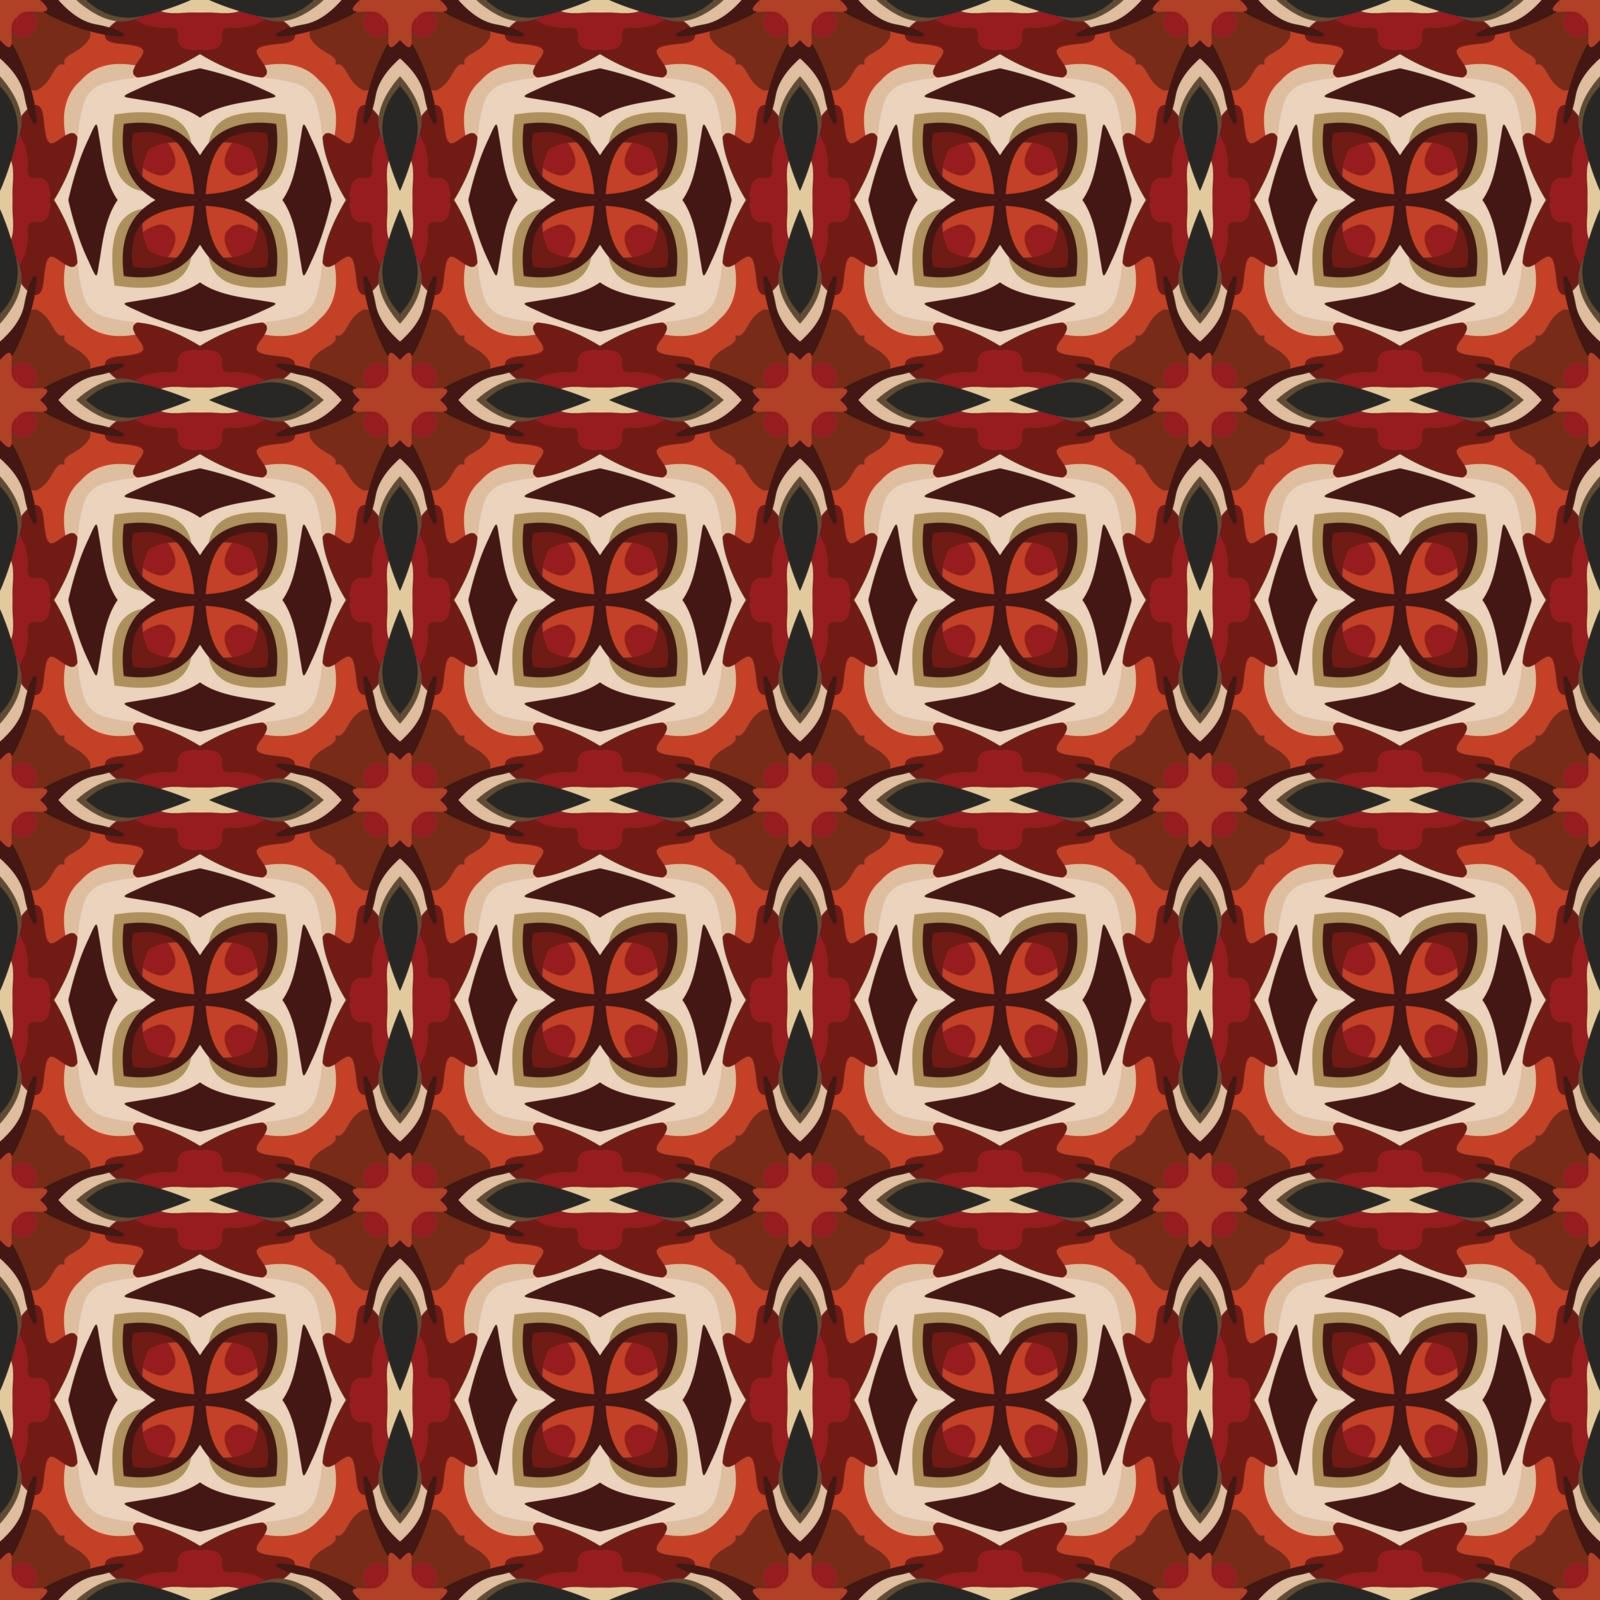 Seamless illustrated pattern made of abstract elements in beige,brown, red and black